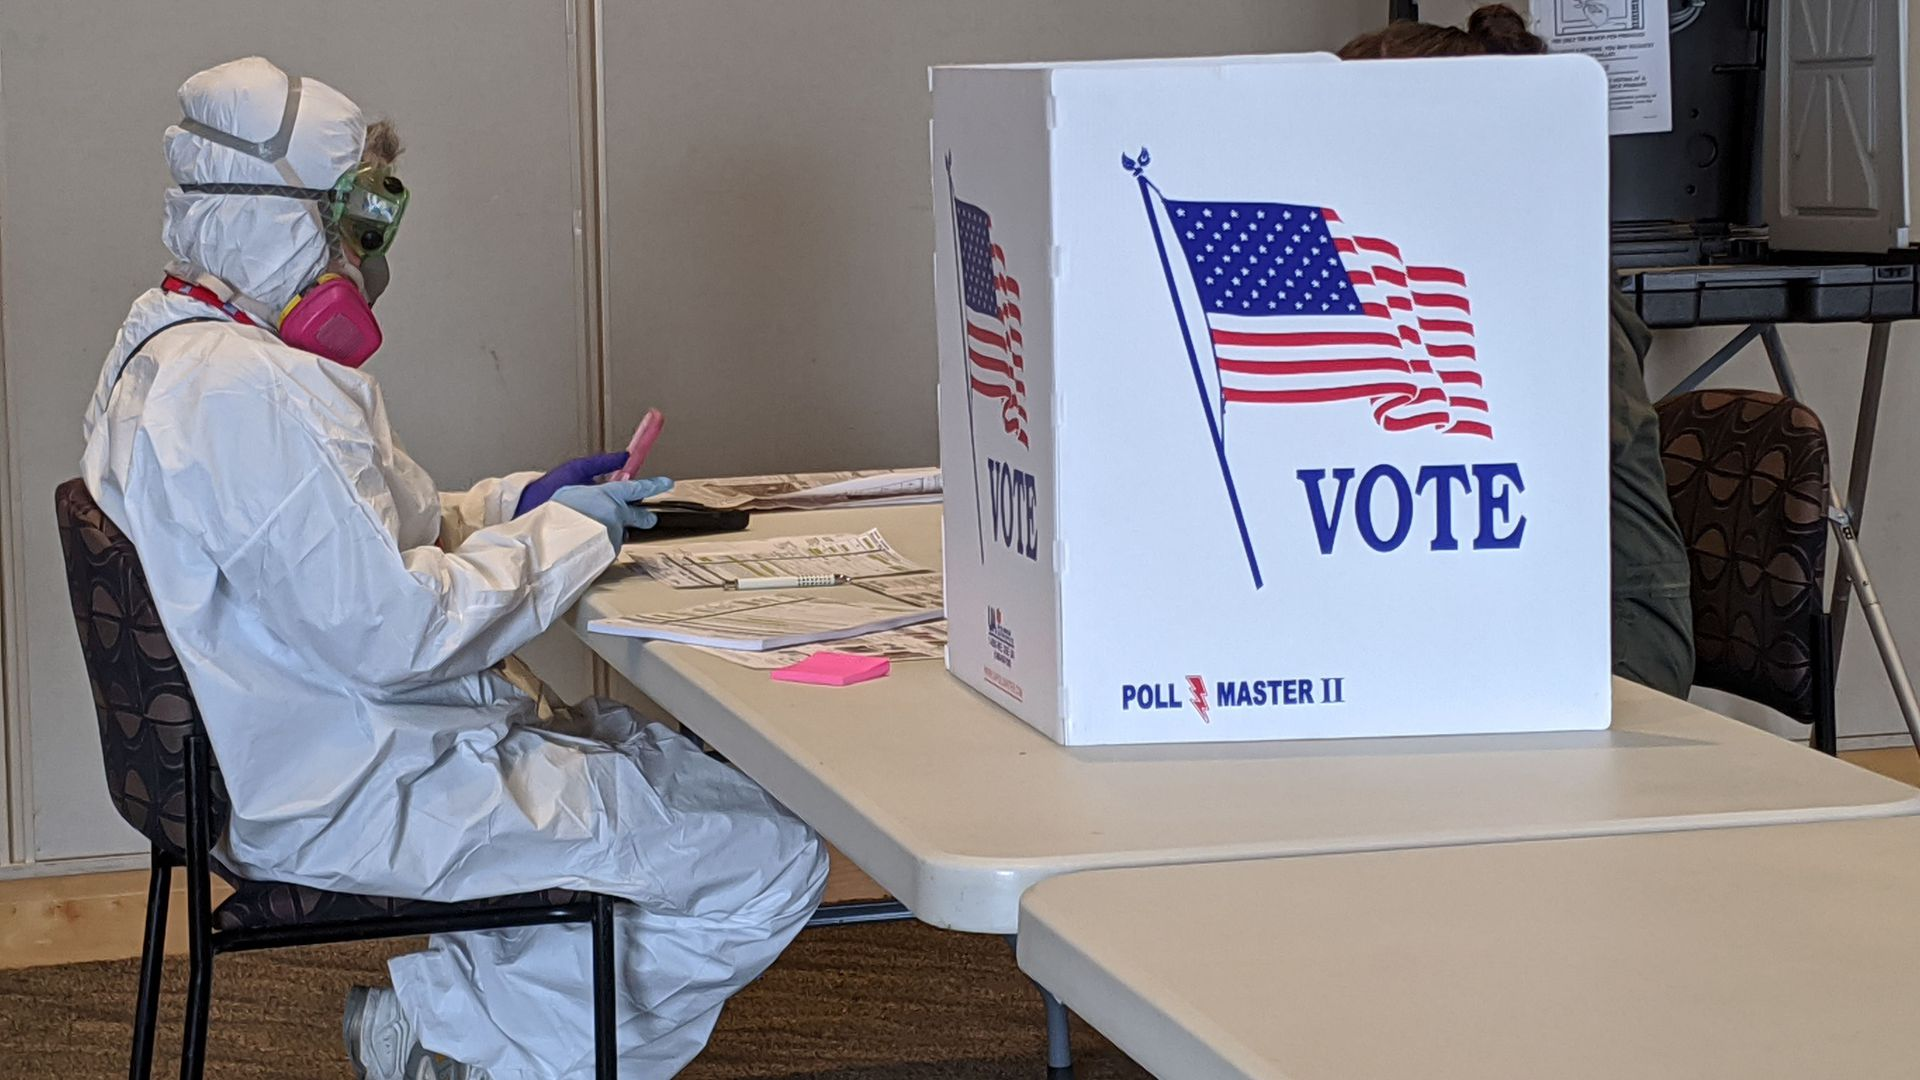 In this image, a person in a hazmat suit and gas mask sits in front of a voting booth